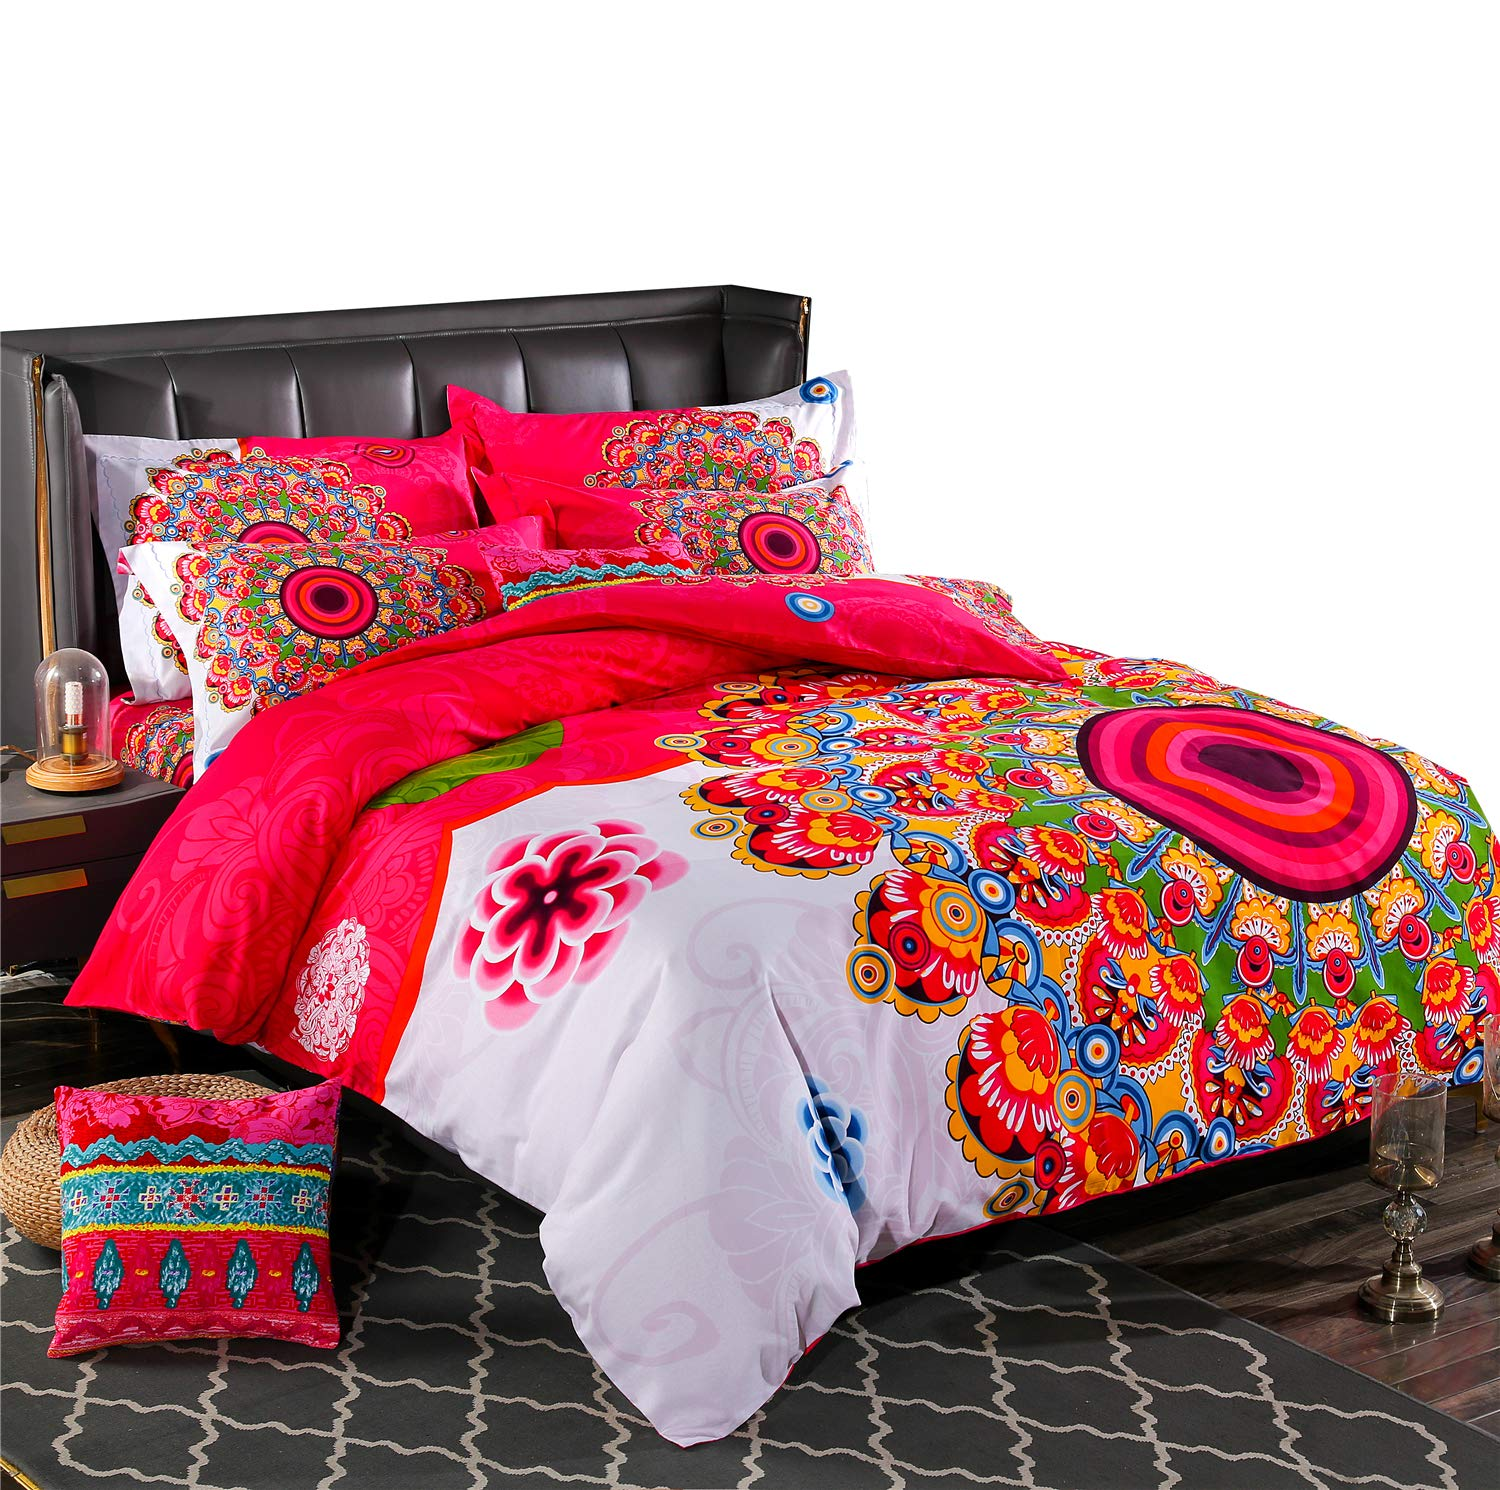 LELVA Bohemia Bedding California King Ethnic Vintage Floral Duvet Cover with Fitted Sheet 100% Brushed Cotton Boho Bedspread Romantic Bedclothes 4Pcs